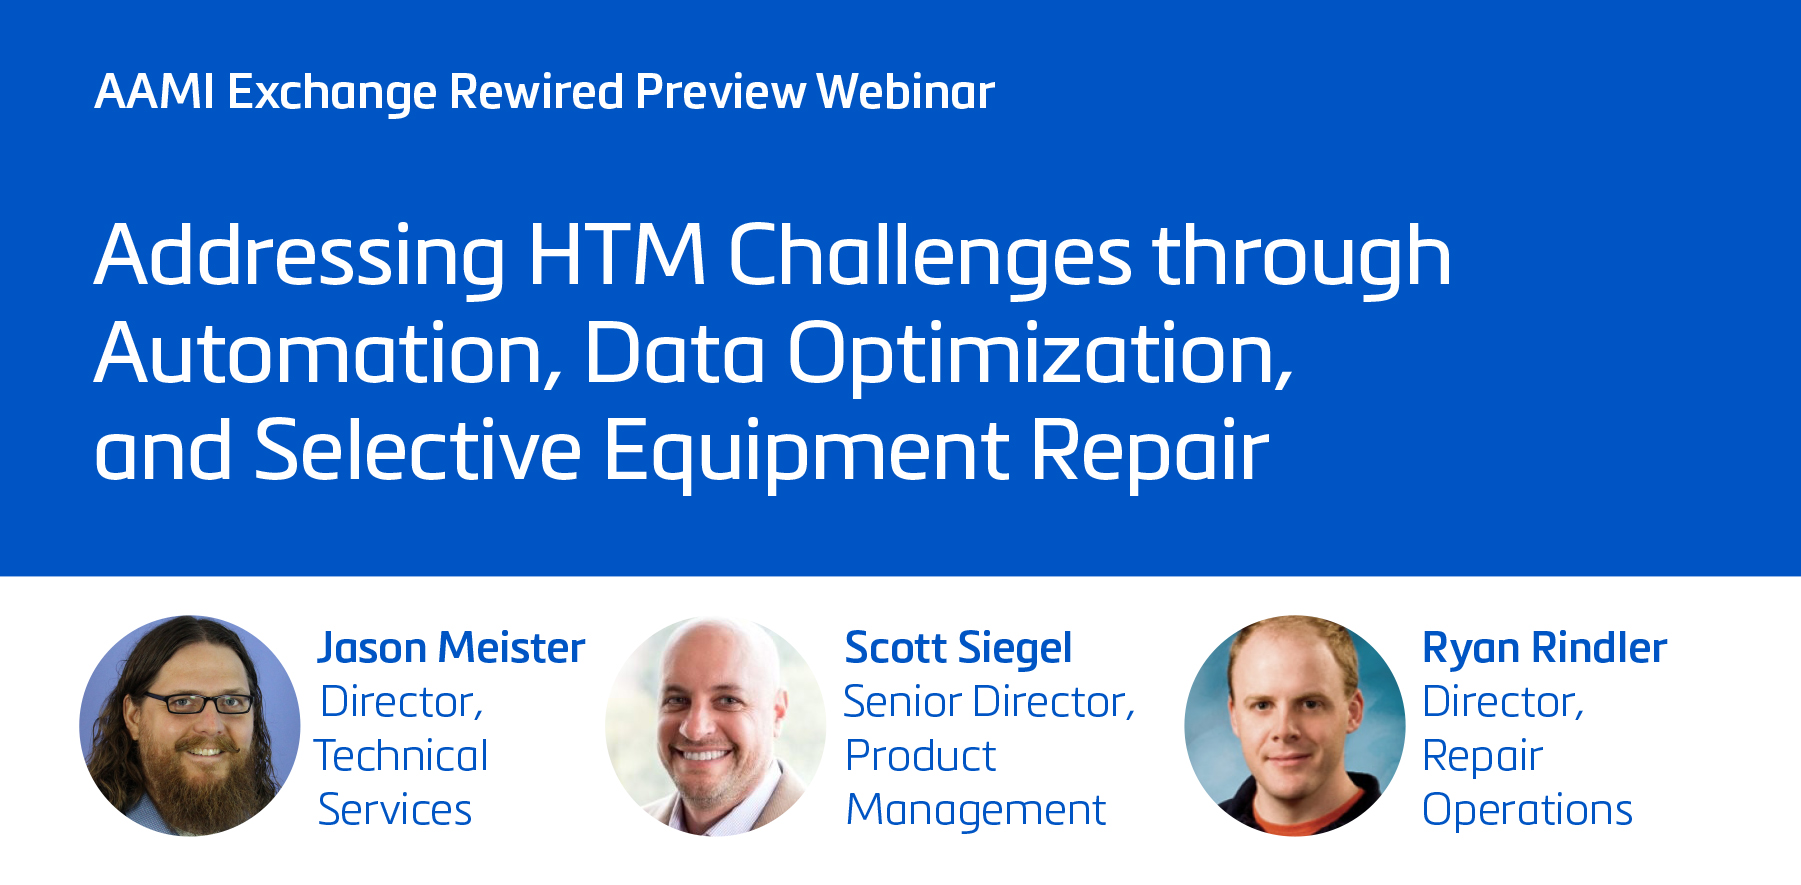 Addressing HTM Challenges through Automation, Data Optimization, and Selective Equipment Repair